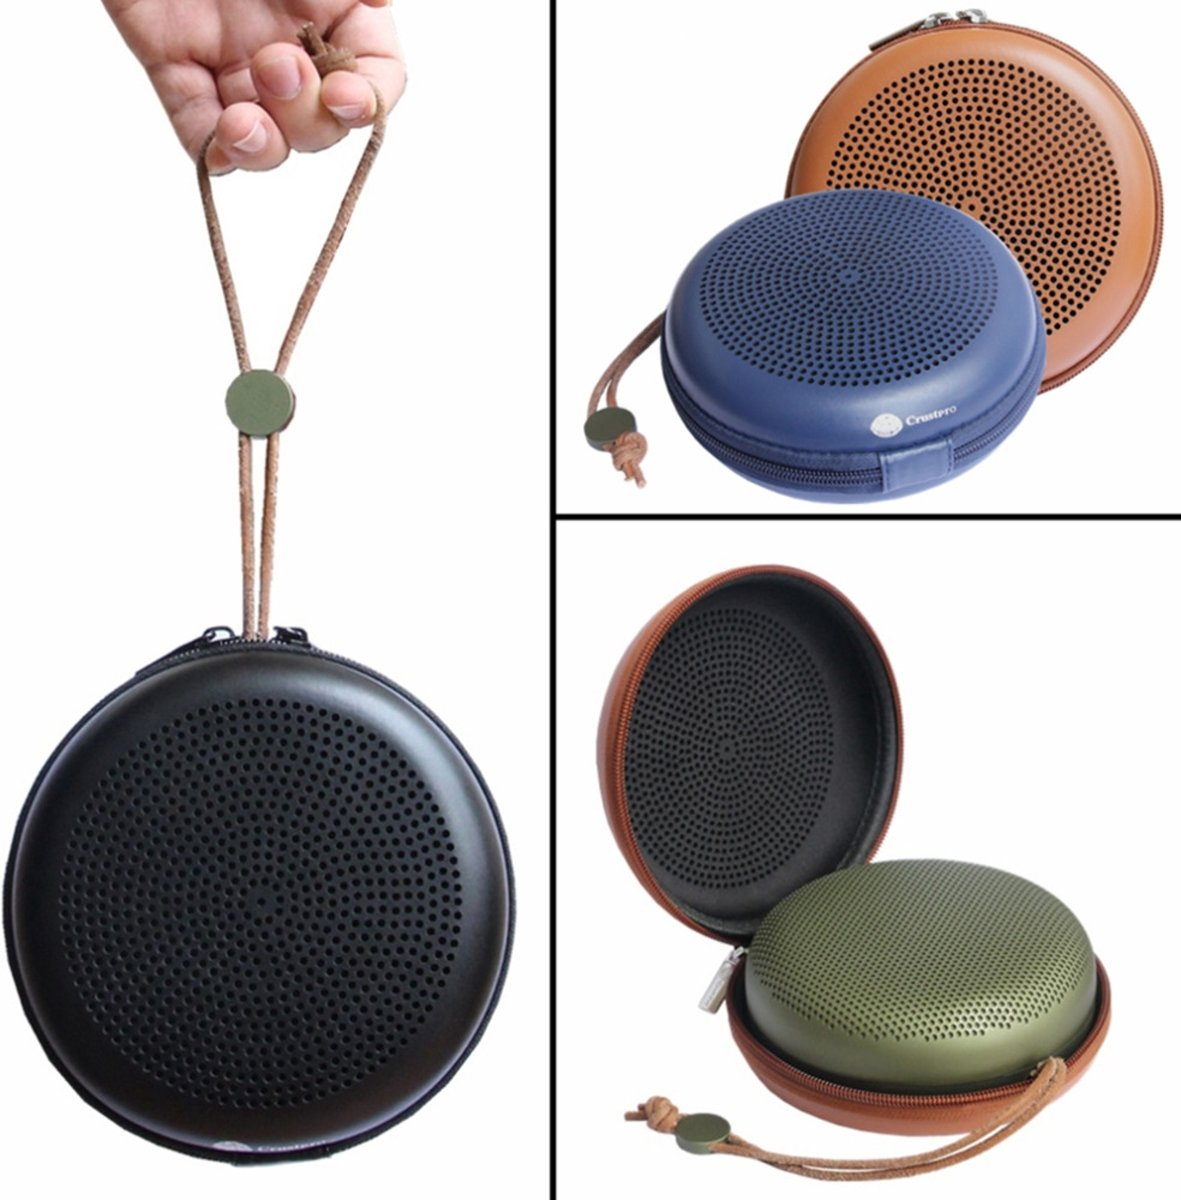 Hard Cover Beschermhoes Voor B&O Bang And Olufsen Beoplay A1 - Opberghoes Travel Case Hoes Opbergtas kopen